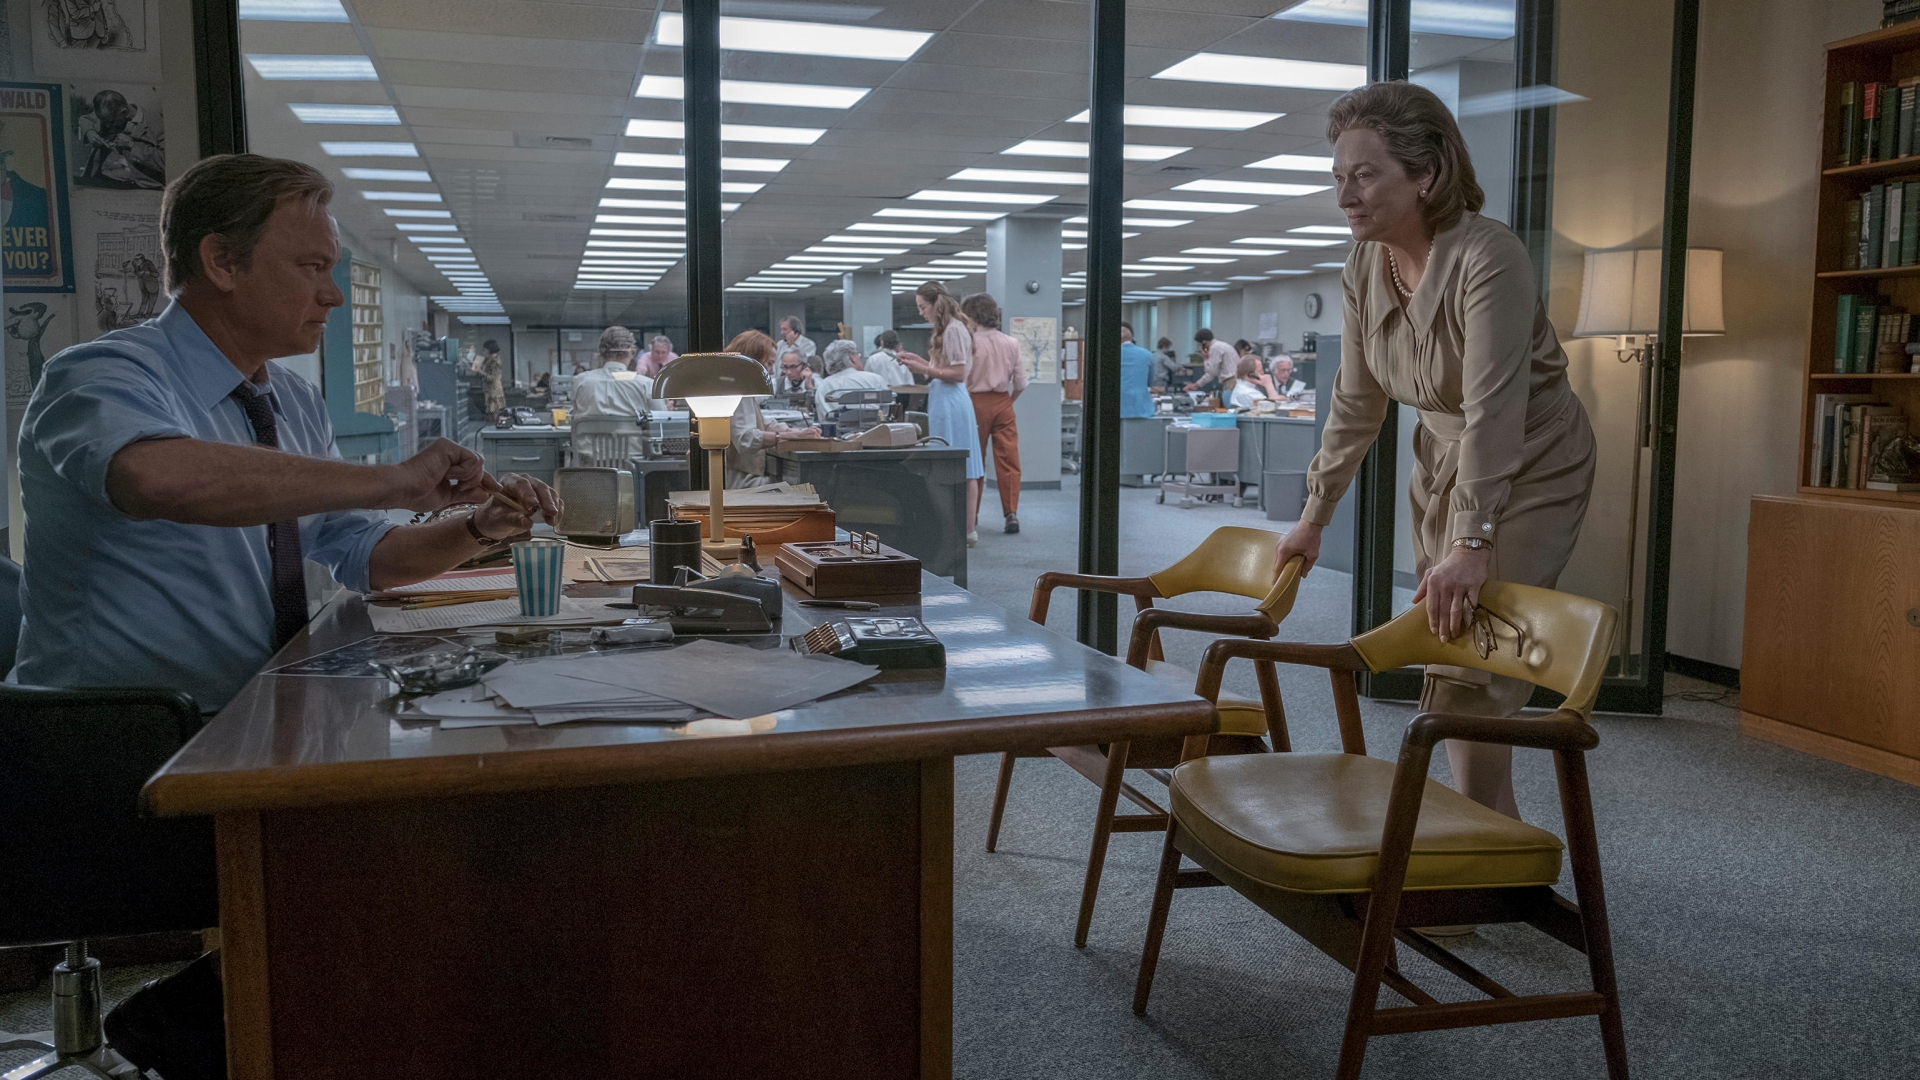 Tom Hanks as Ben Bradlee and Merryl Streep as Katherine Graham in The Post. (Credit: Twentieth Century Fox/Entertainment Pictures/Alamy Stock Photo)